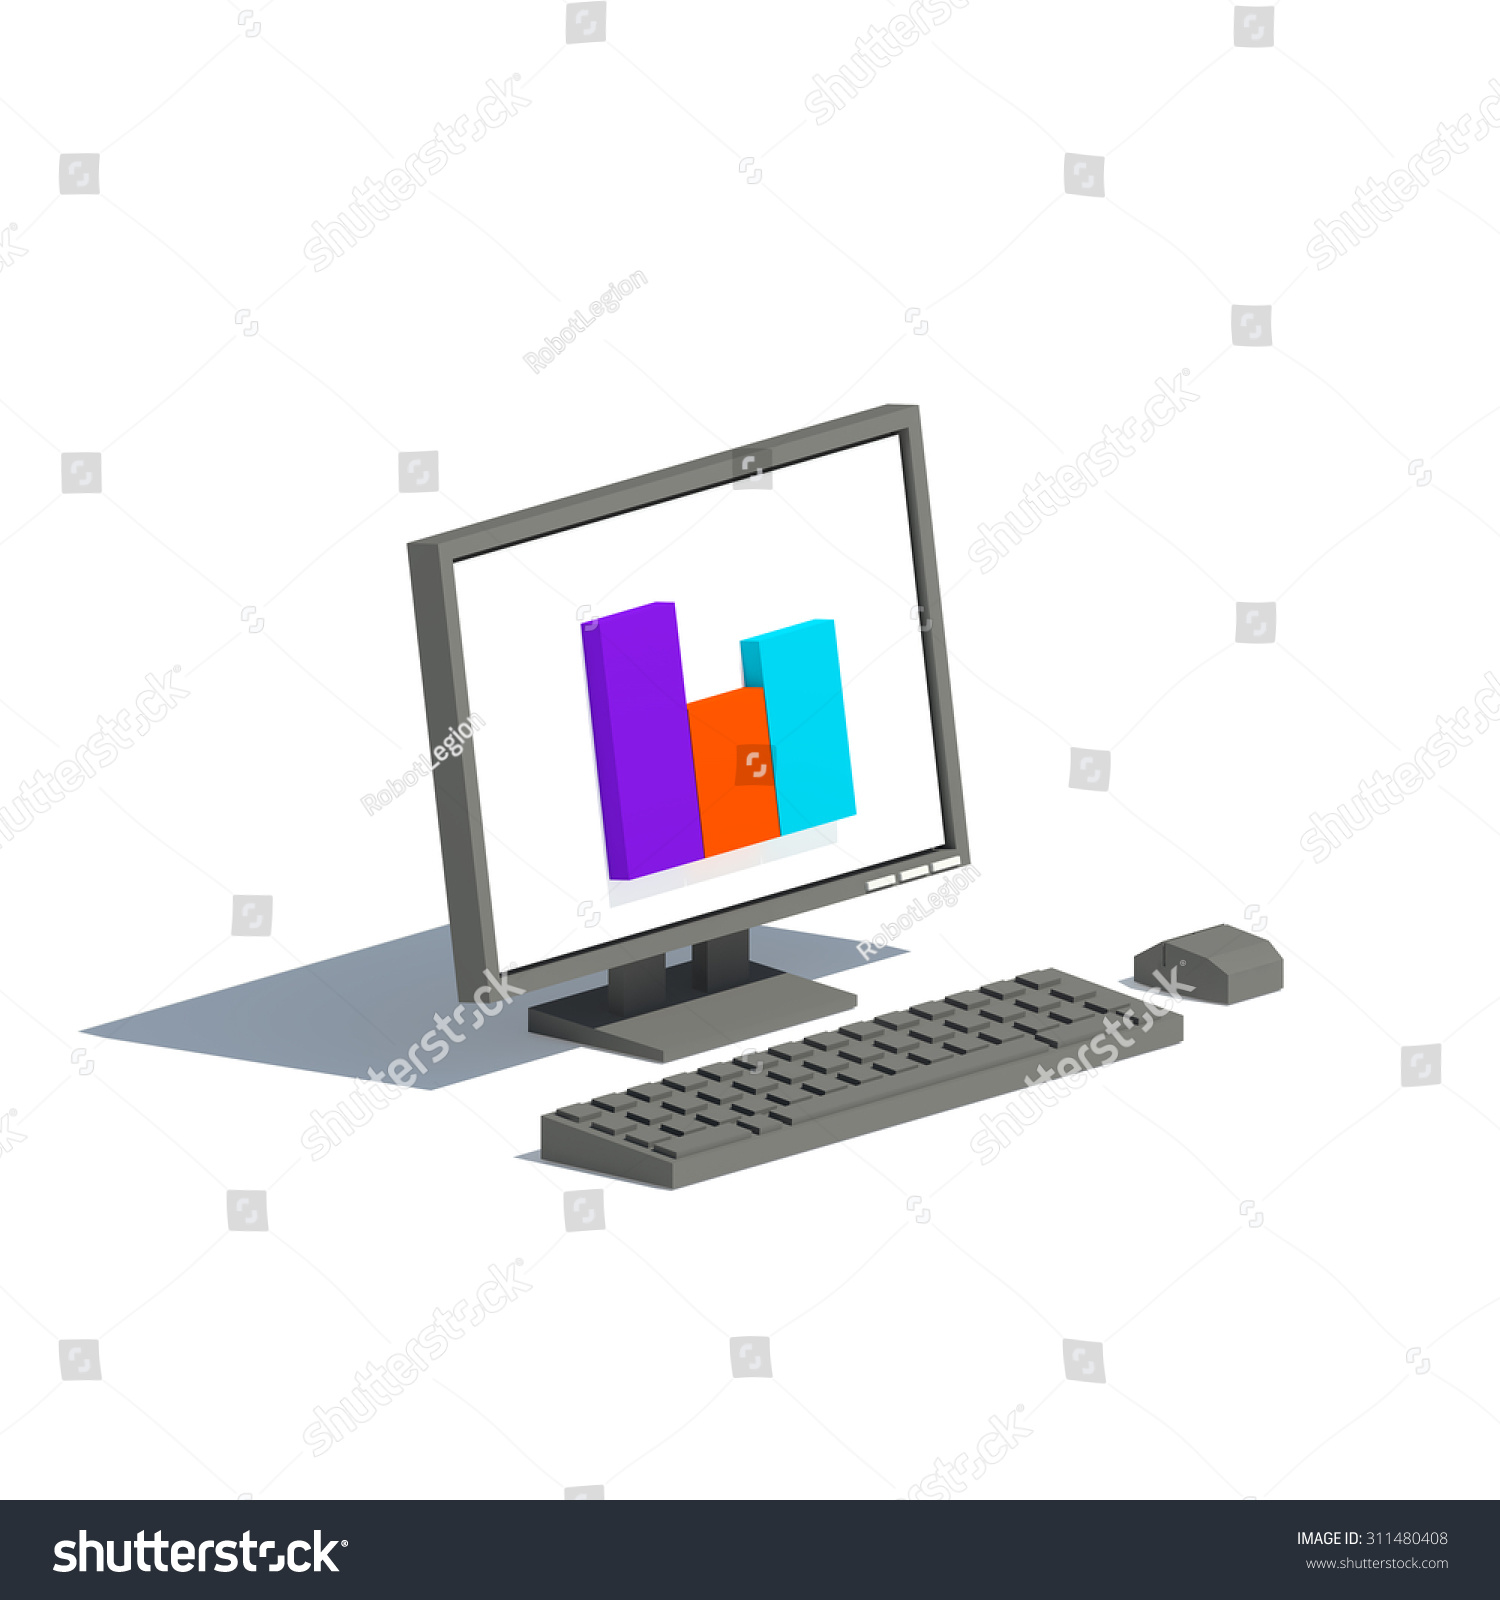 Low Poly Black Gray Computer Monitor Stock Illustration 311480408 ...